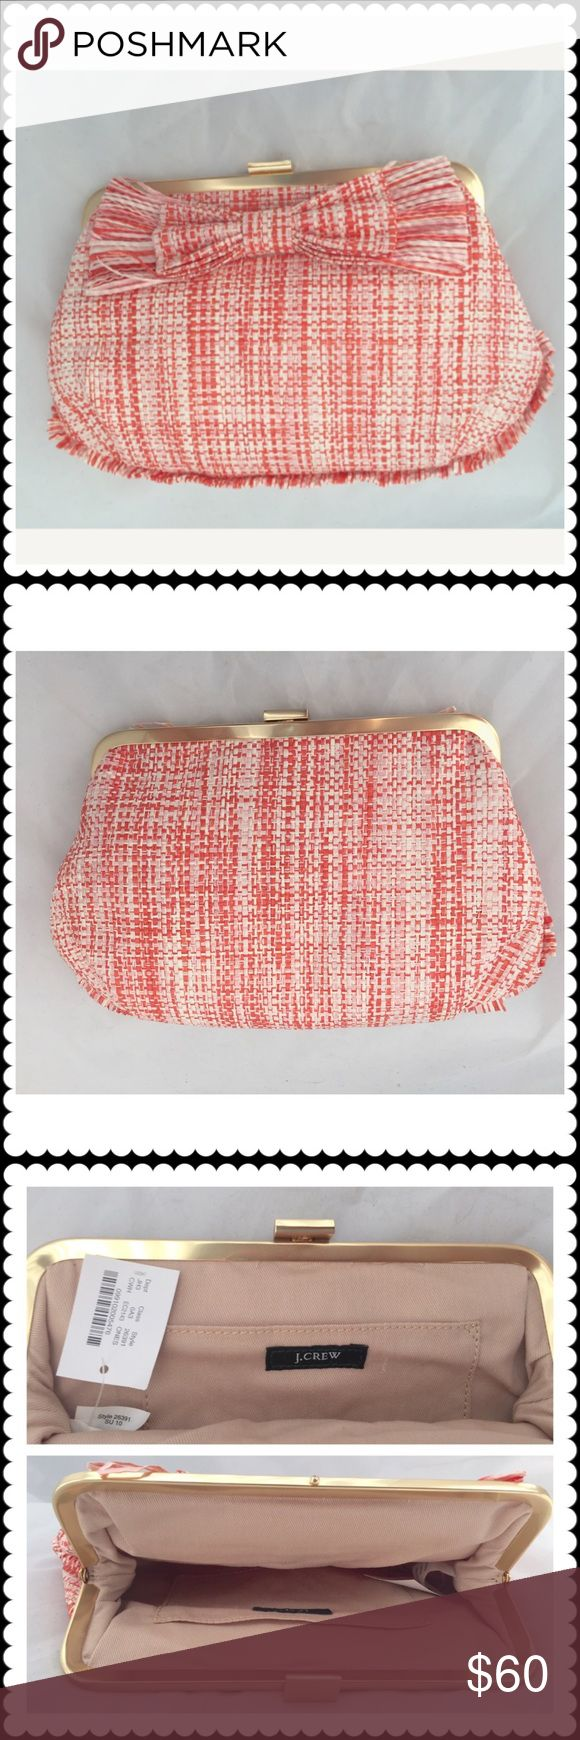 """J. Crew raffia clutch bag J. Crew raffia orange clutch bag with oversized bow and tiny fringes all around the bottom half. New with original tag. Canvas lined. Widest part is about 10"""" and height is about 6"""". J. Crew Bags Clutches & Wristlets"""